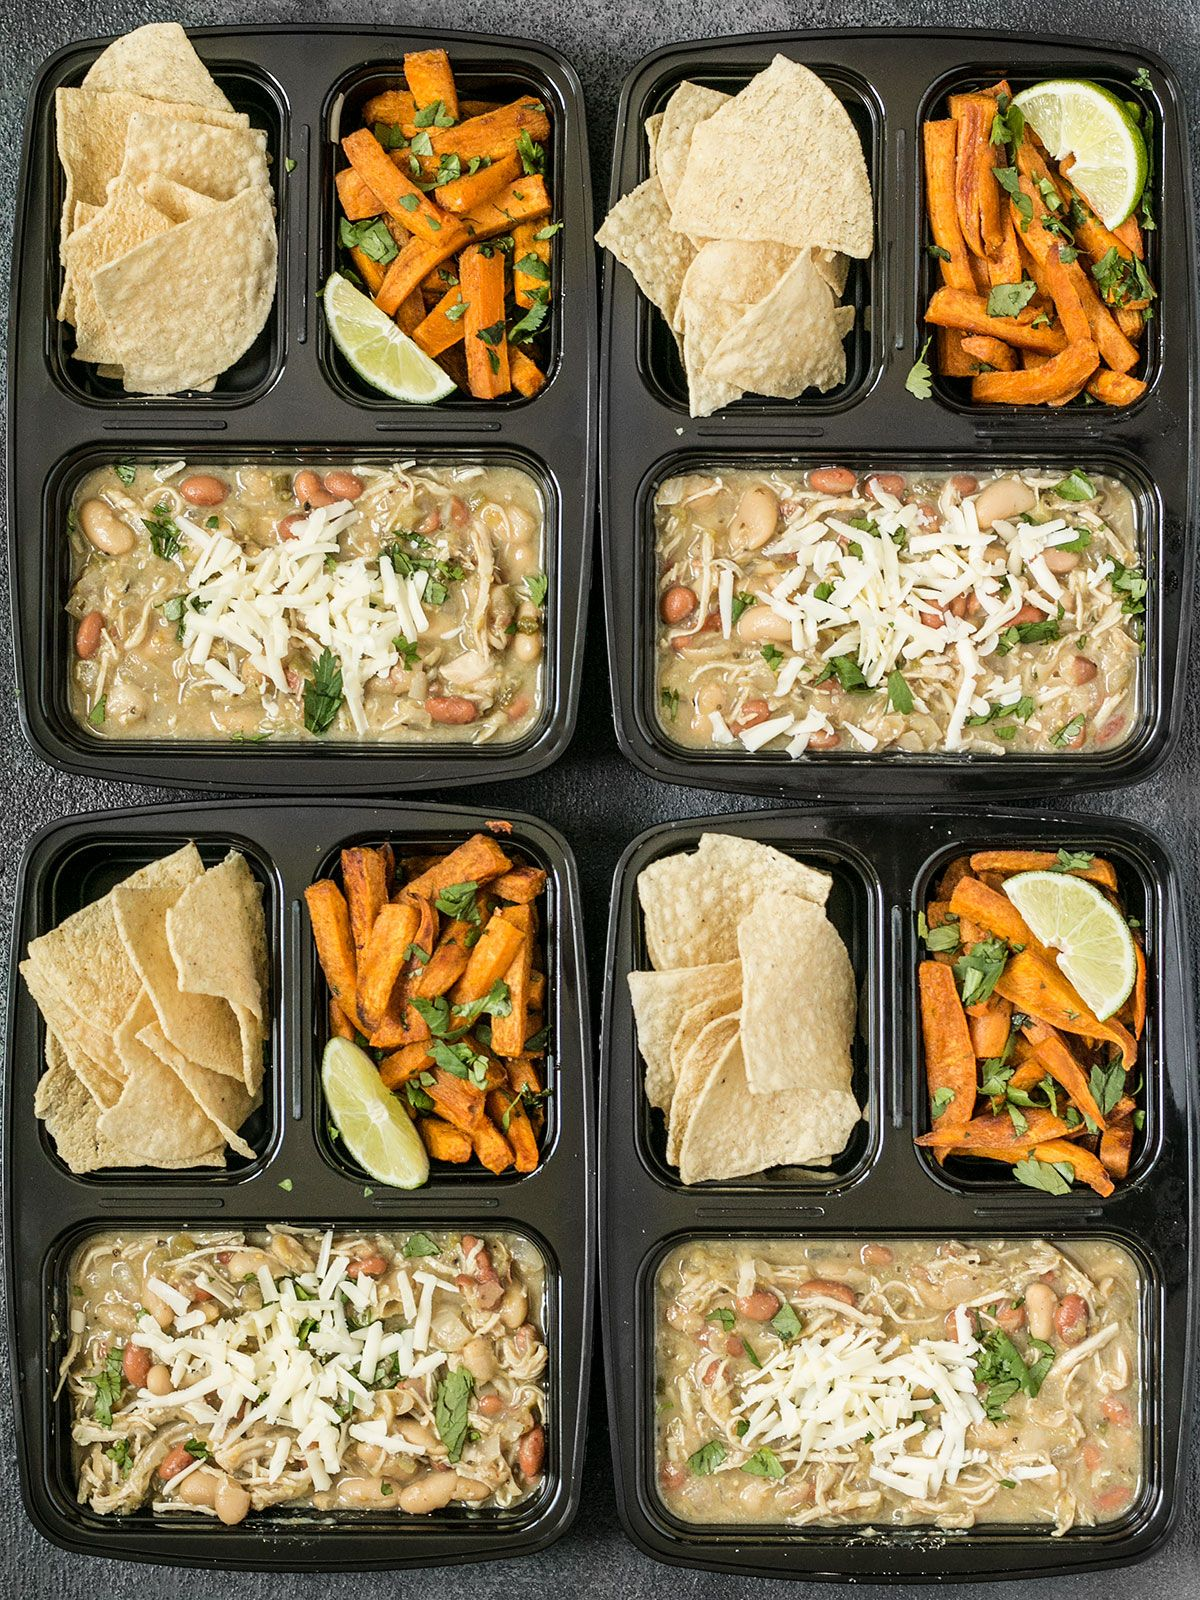 White chicken chili meal prep white chicken meals and cooker this white chicken chili meal prep includes a slow cooker chili with cumin lime roasted sweet potatoes and tortilla chips for dipping budgetbytes forumfinder Gallery